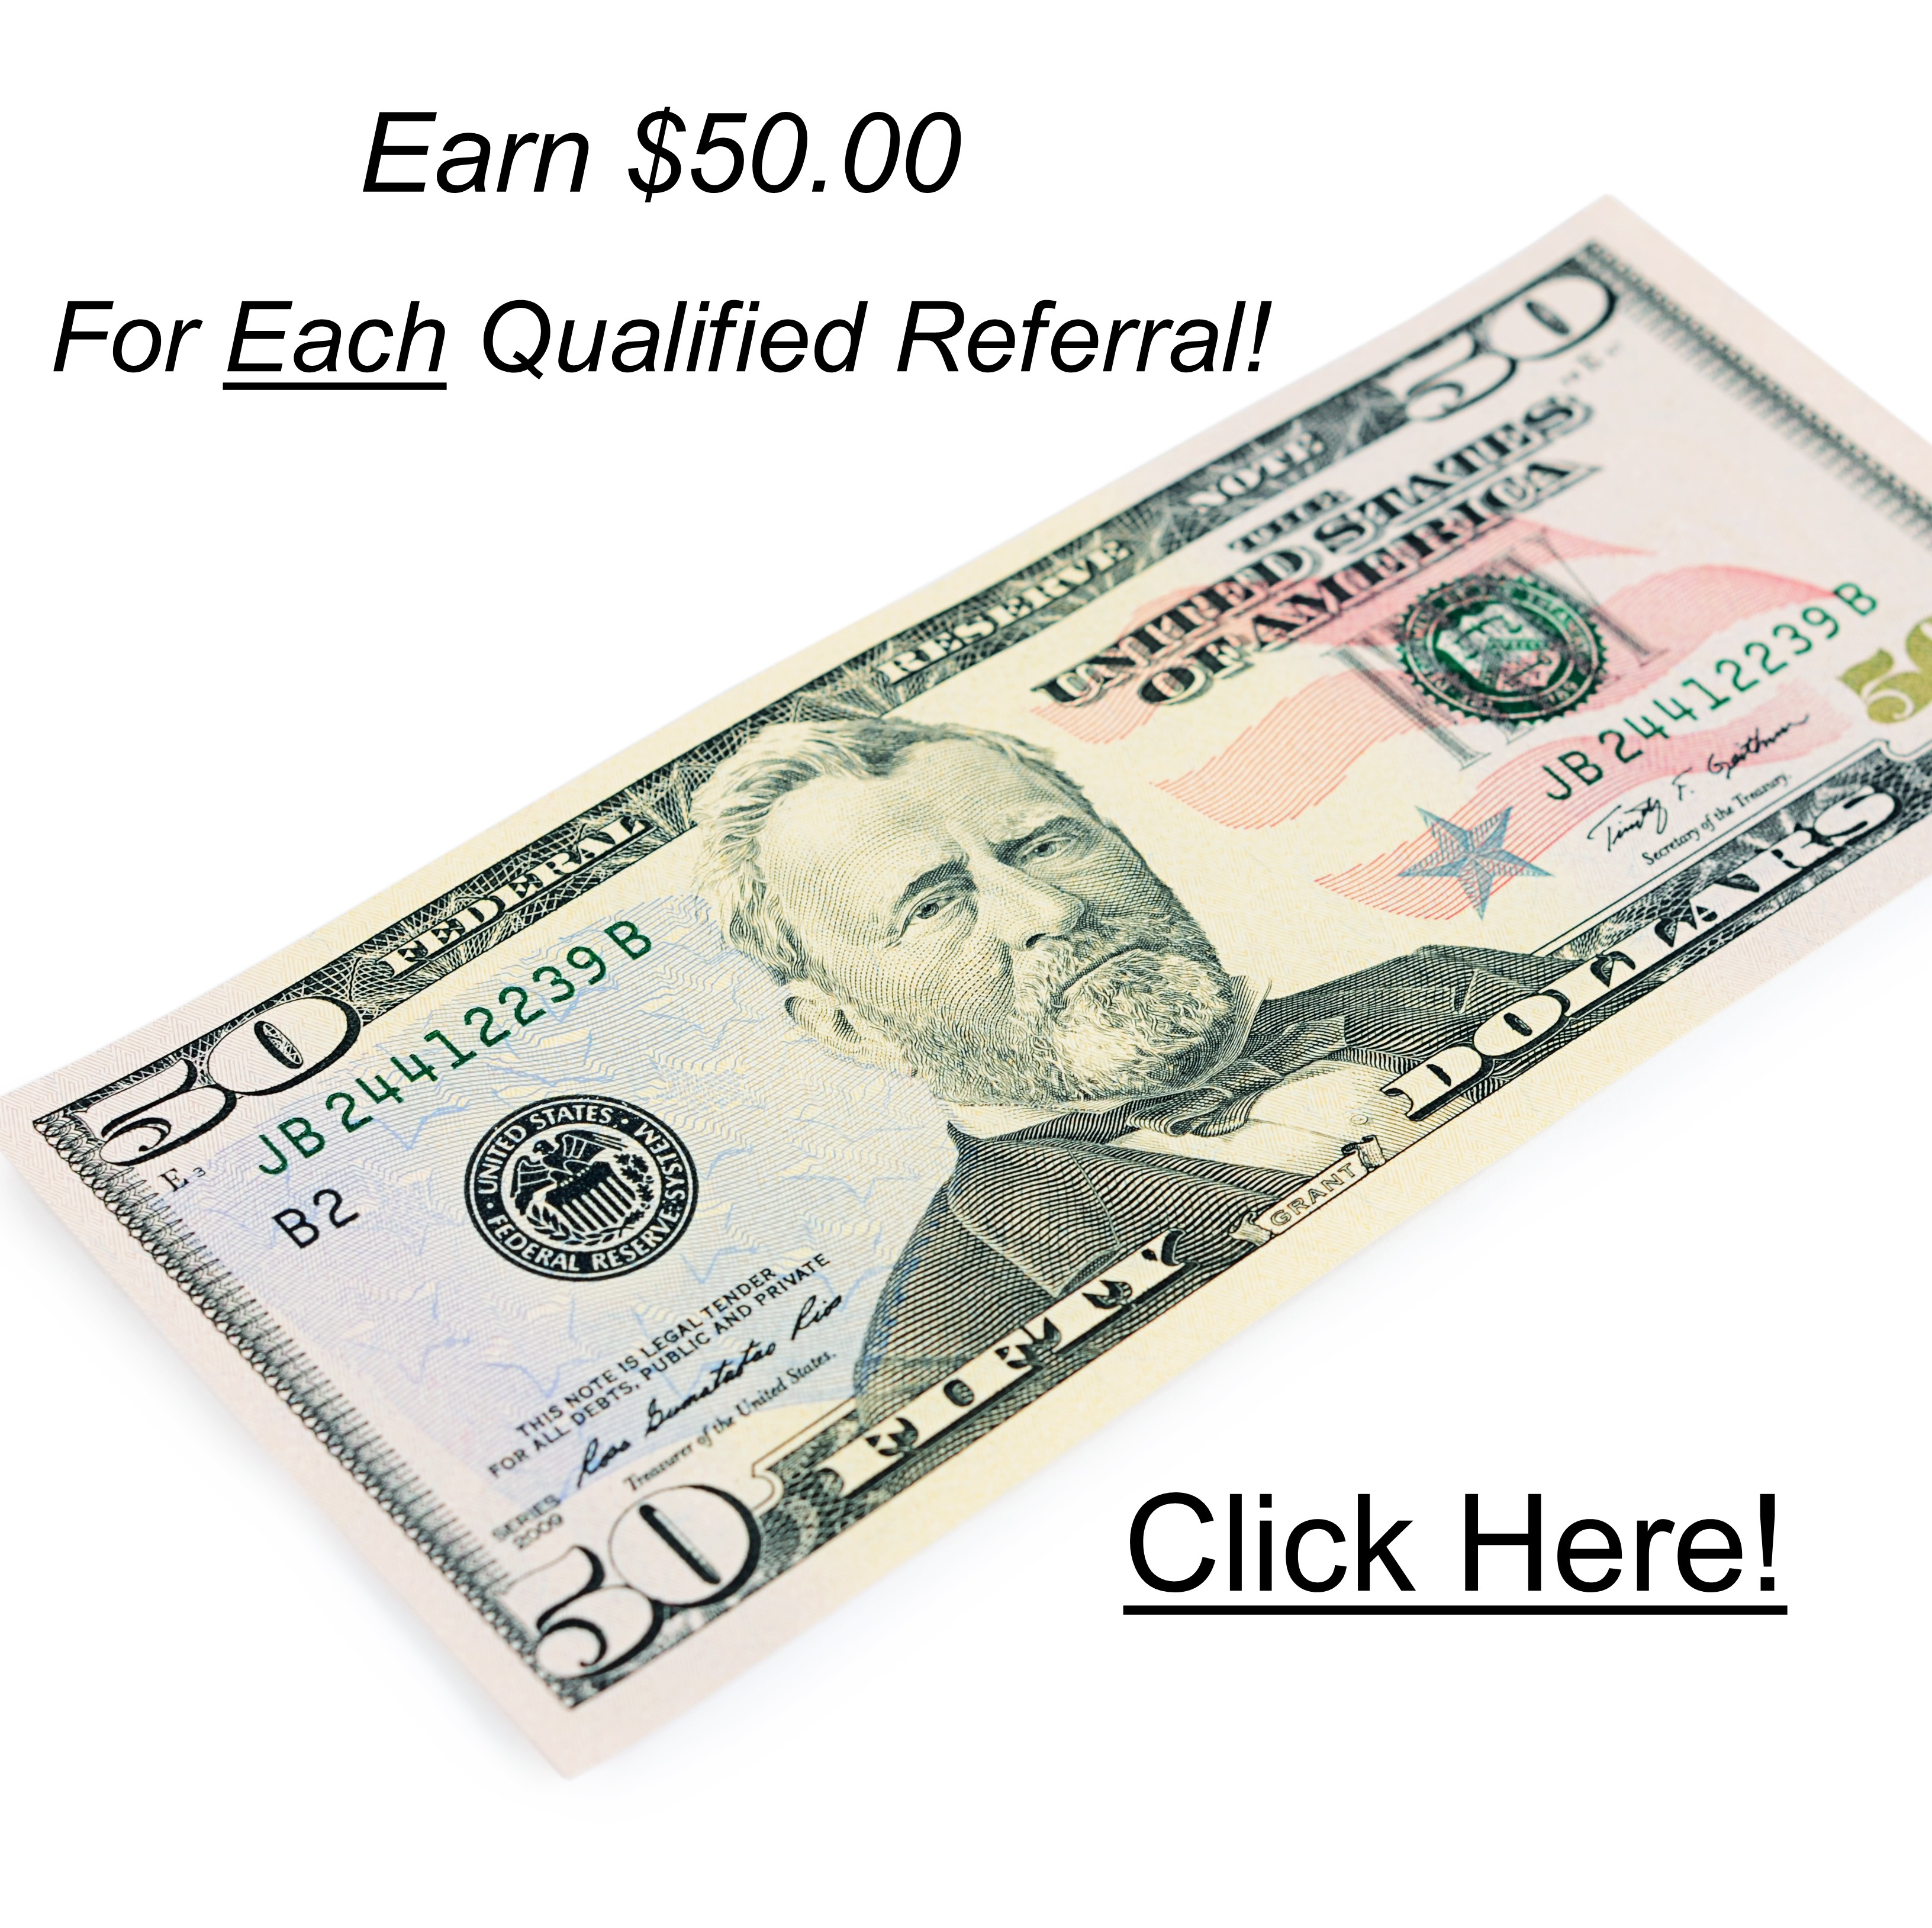 Earn $50 For Each Qualified Referral